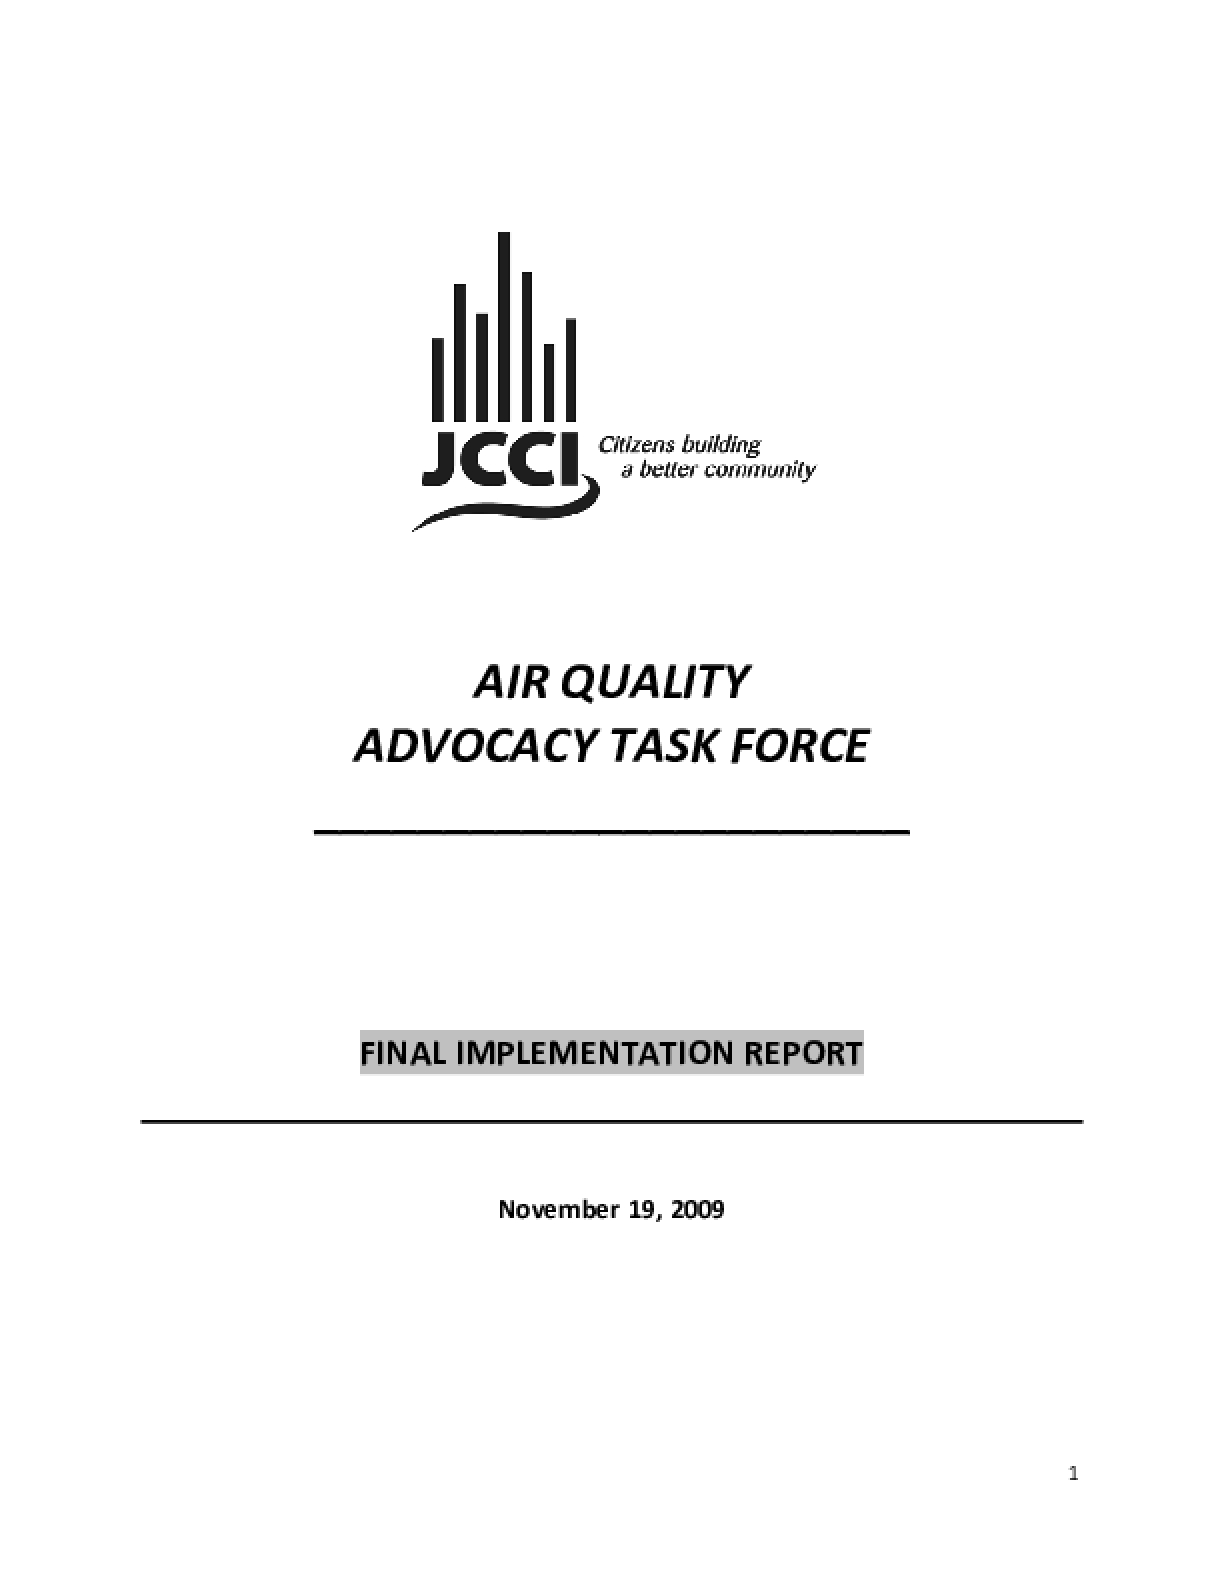 Air Quality Advocacy Task Force: Final Implementation Report